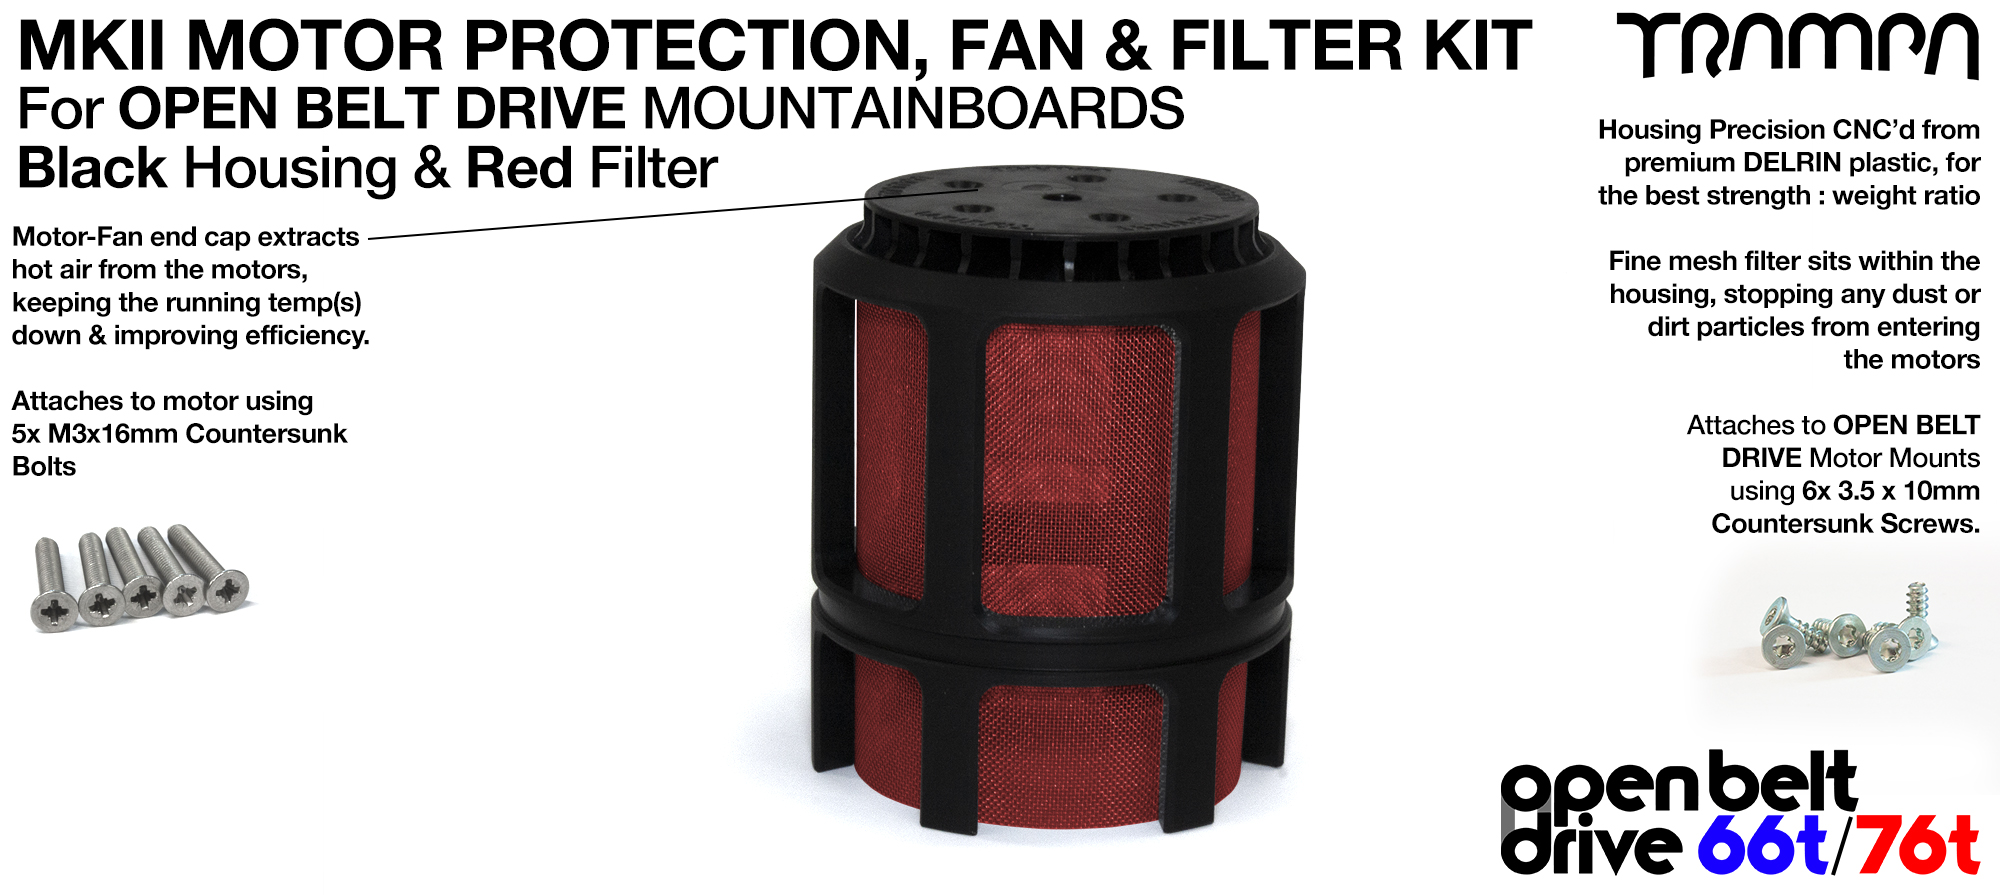 1x OBD MKII Motor protection Sleeve with RED Filter